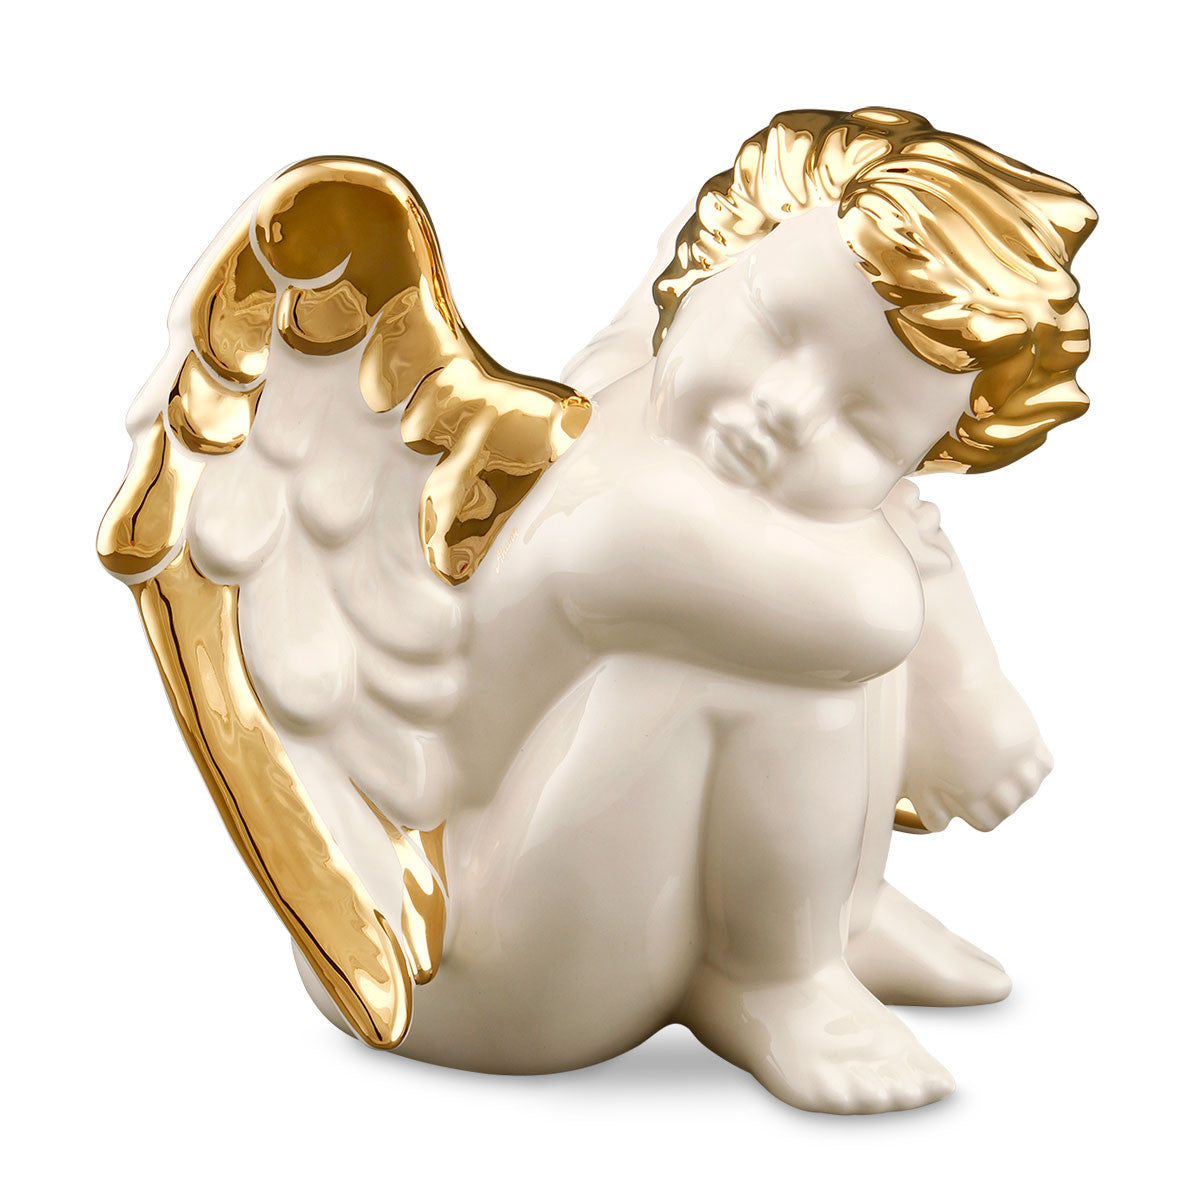 ceramic angel figurines, decorative objects and figurines